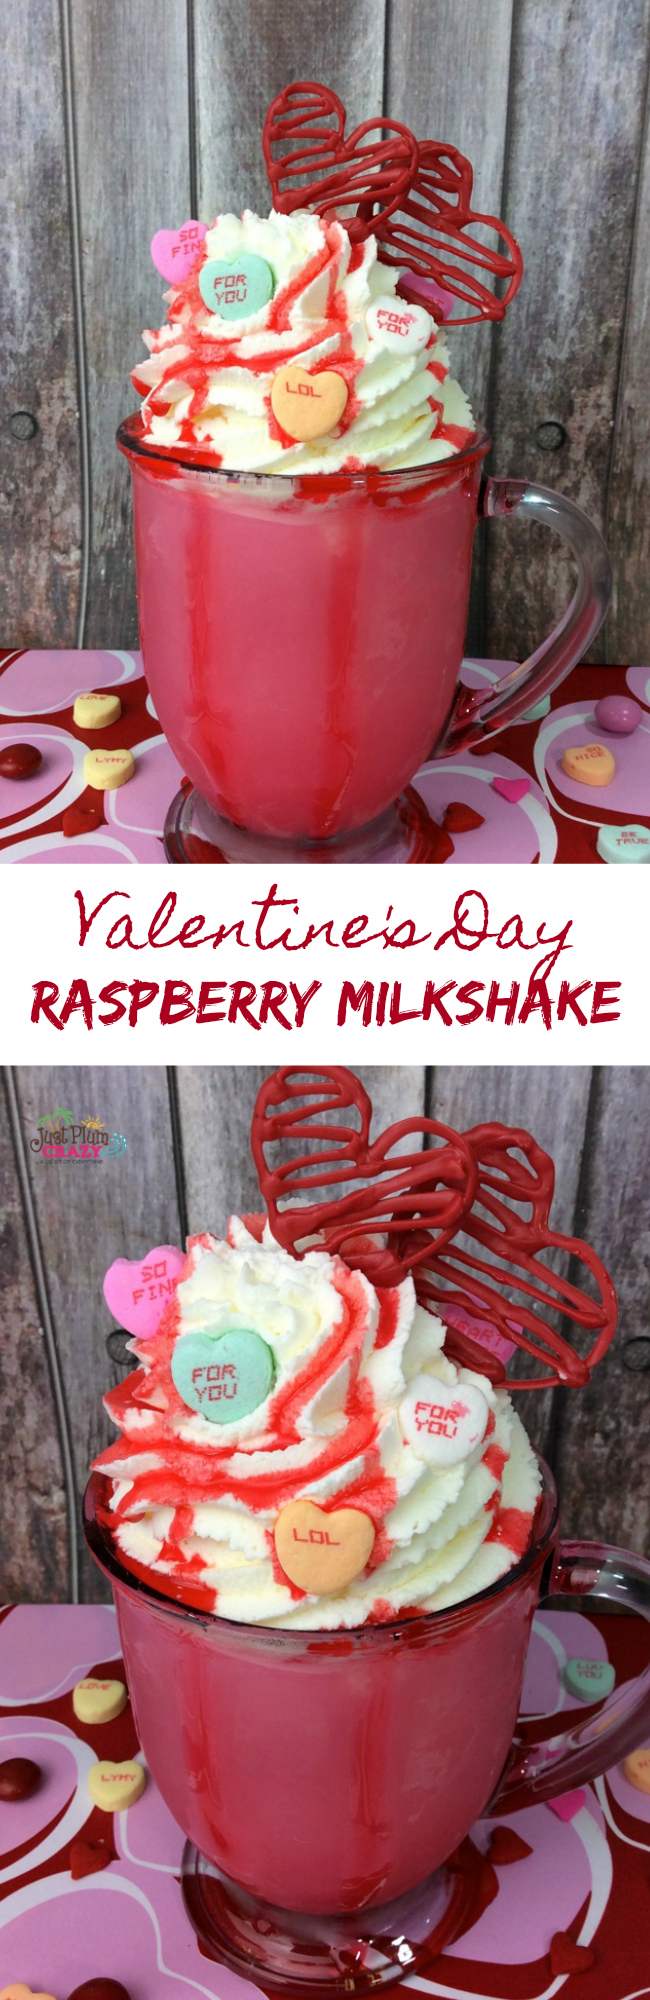 Raspberry Milkshakre Recipe - Perfect for Valentine's Day